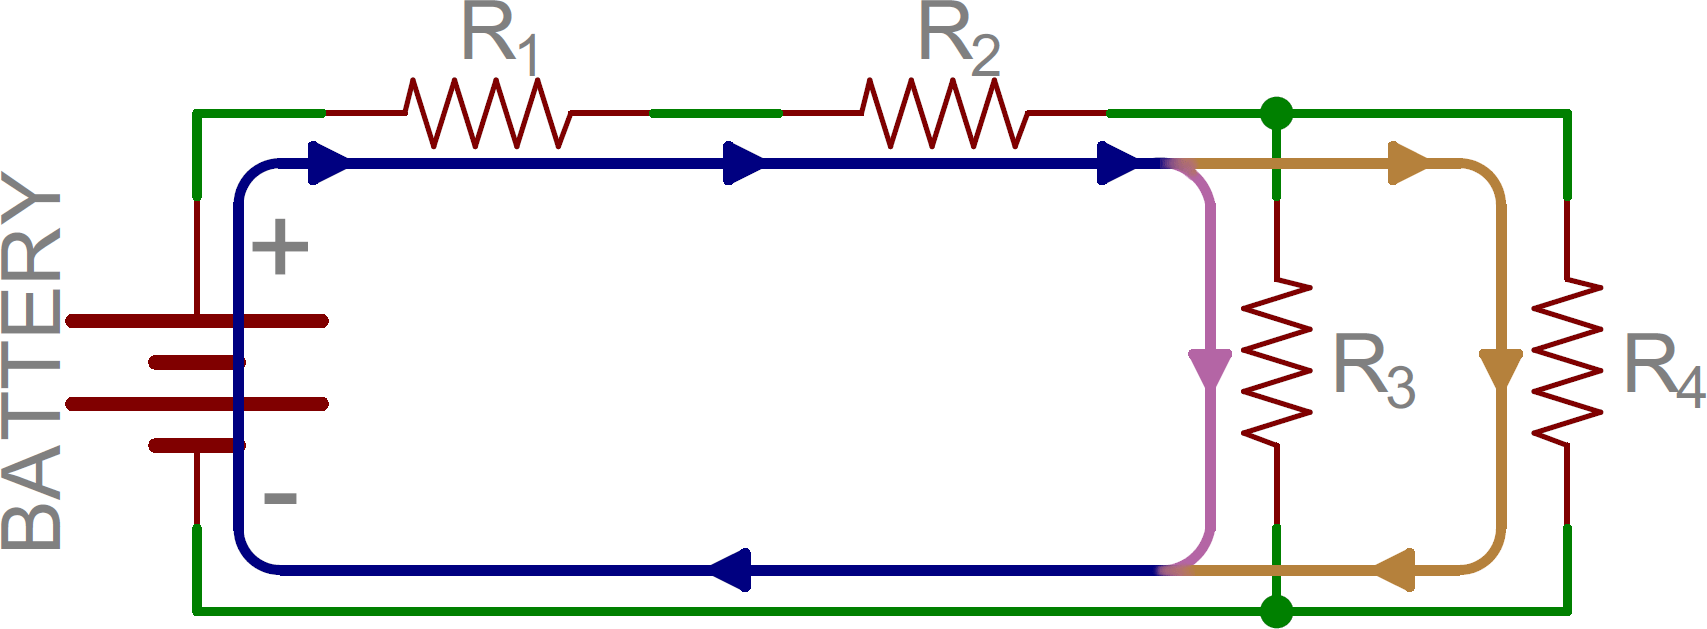 hight resolution of example of current flow through circuit